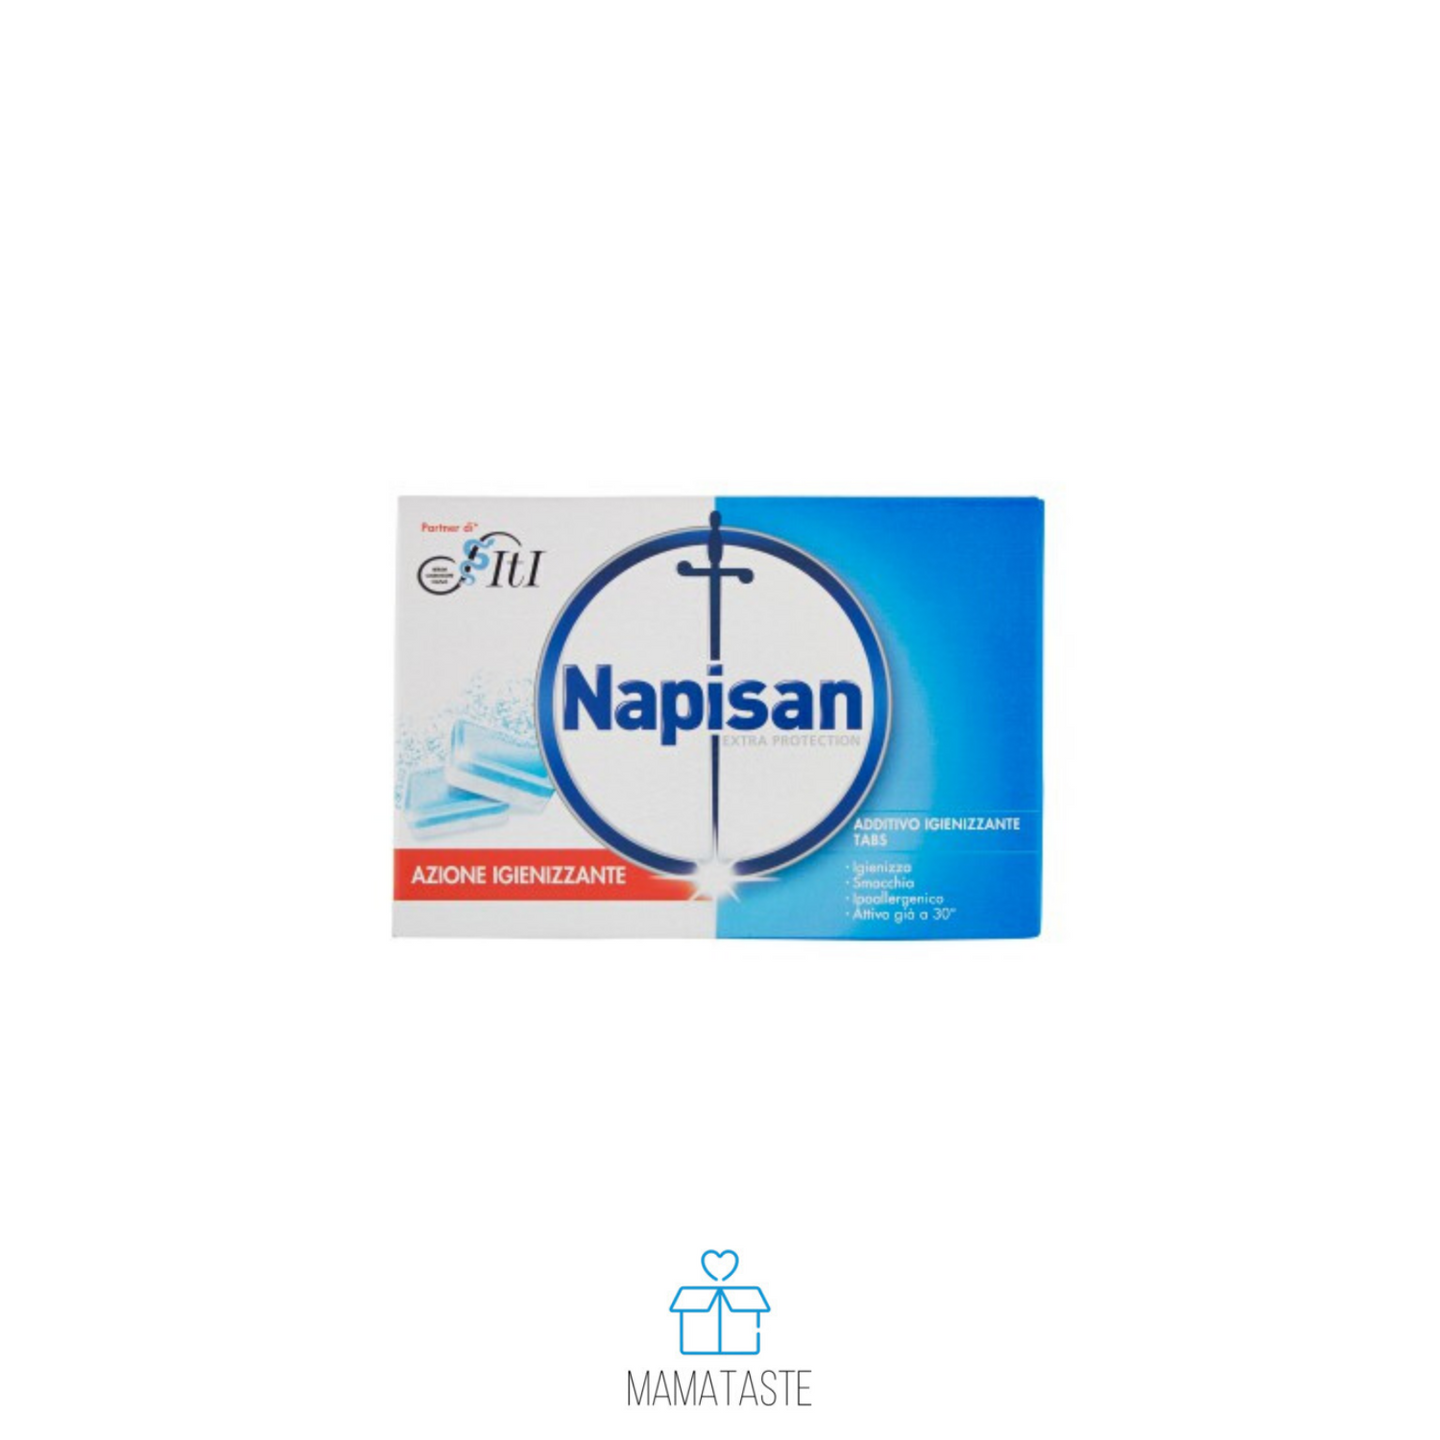 Napisan Extra Protection additivo igienizzante 10 tabs 225 g